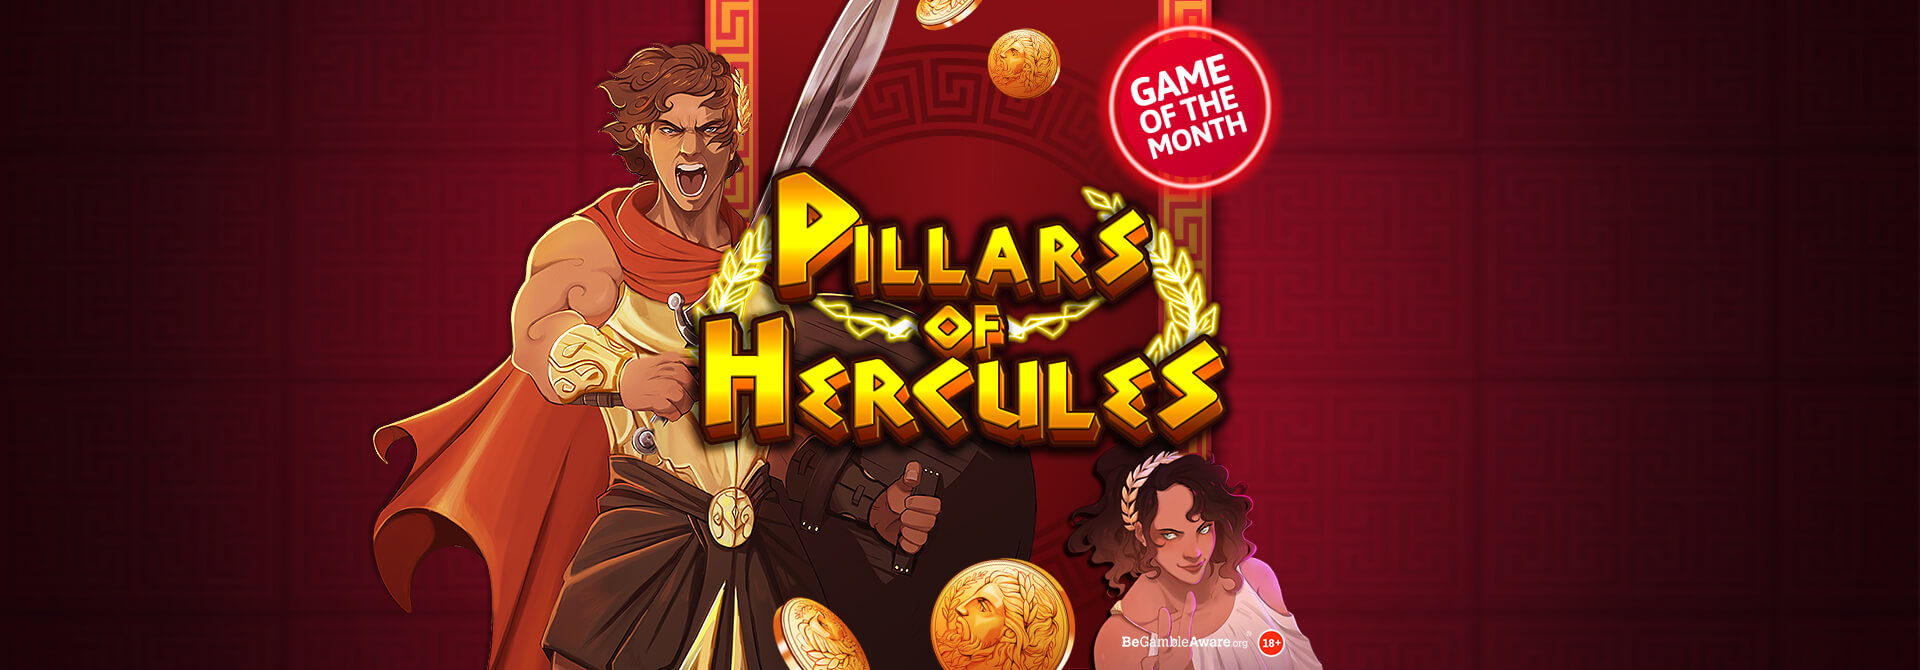 Get ready for your most heroic adventure yet, with Dr Slots newest Game, Pillars of Hercules Mobile Slots!